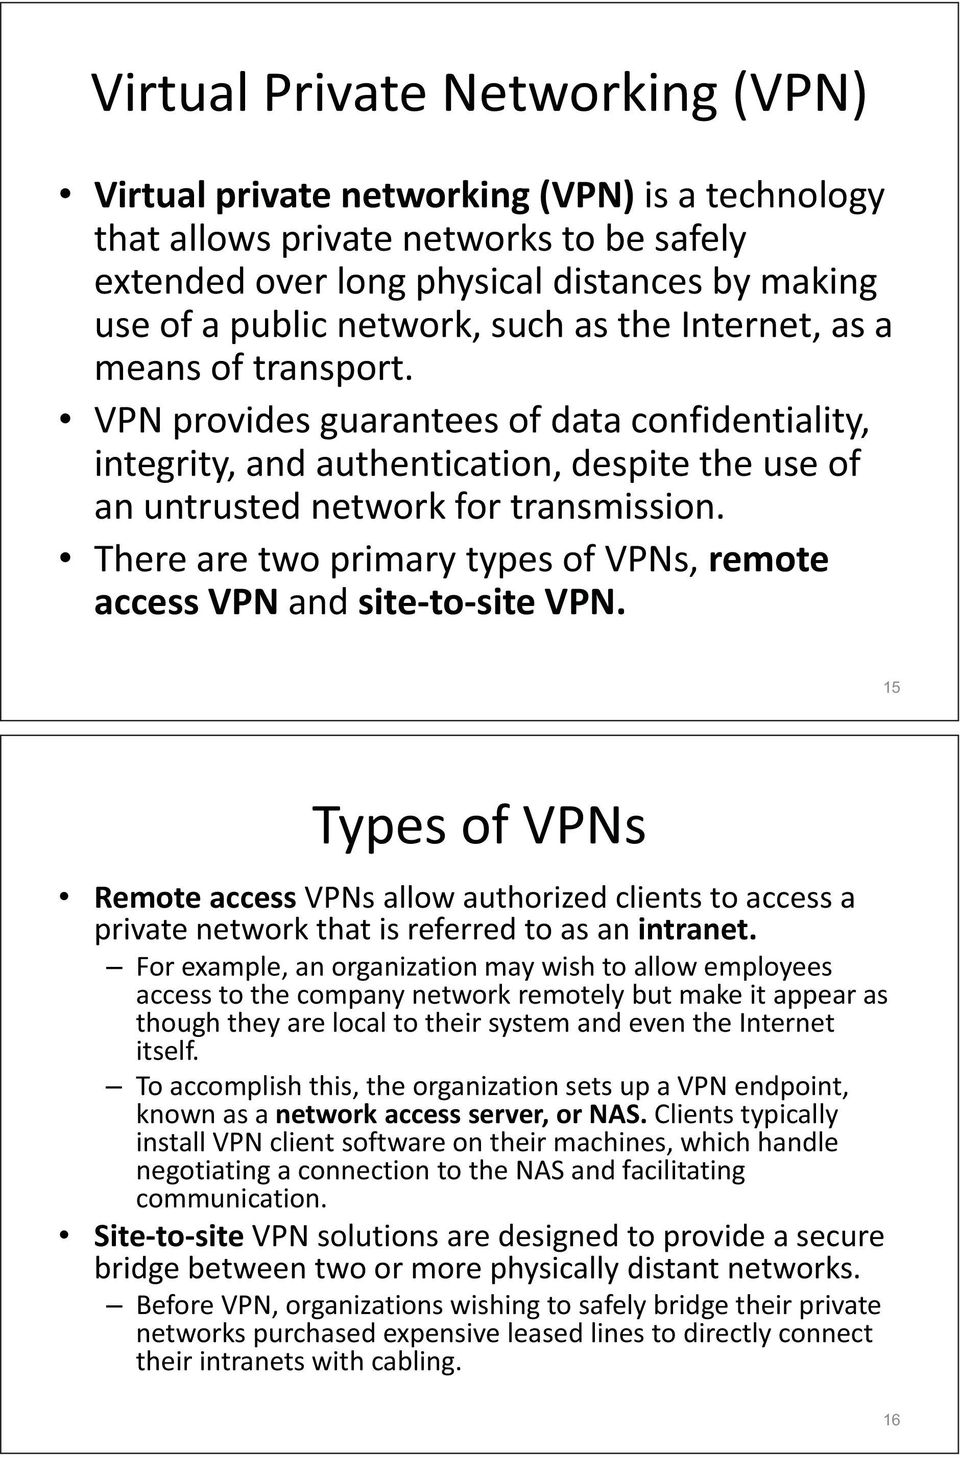 There are two primary types of VPNs, remote access VPN and site-to-site VPN.